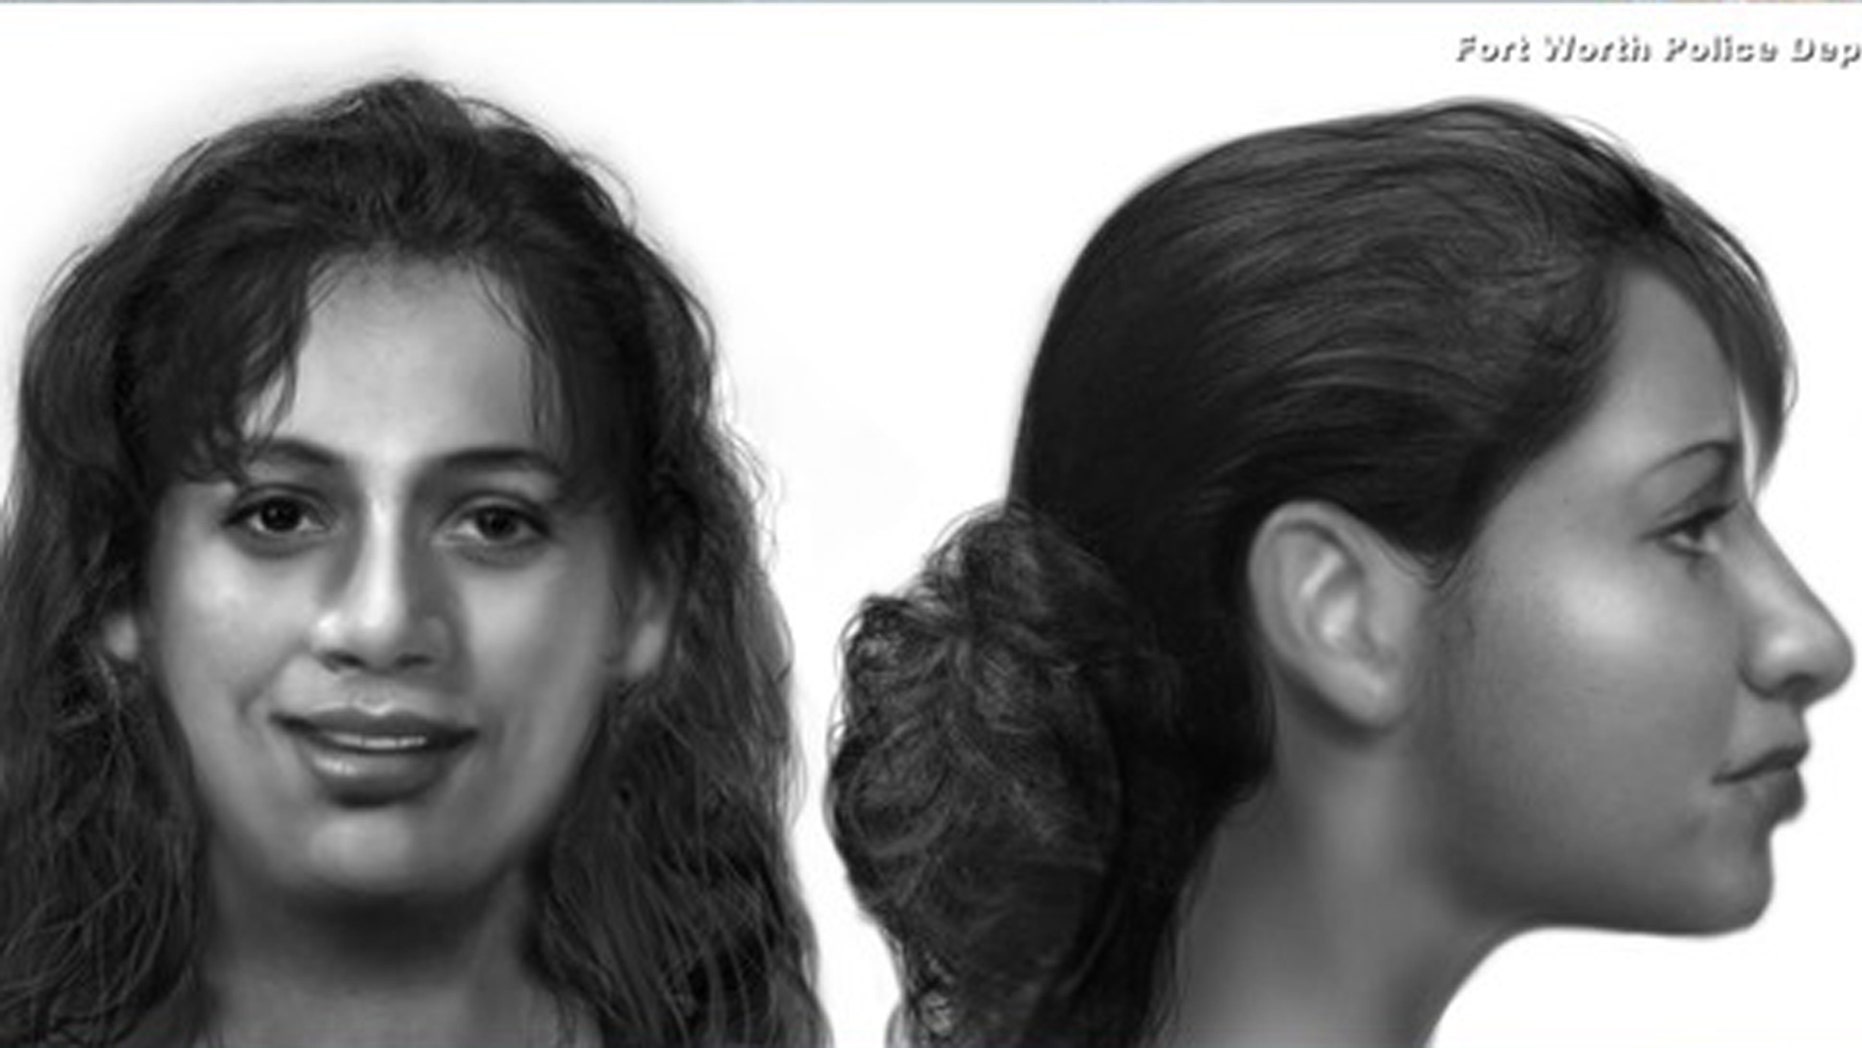 Police need help identifying a woman found inside a shallow grave in Fort Worth, Texas.